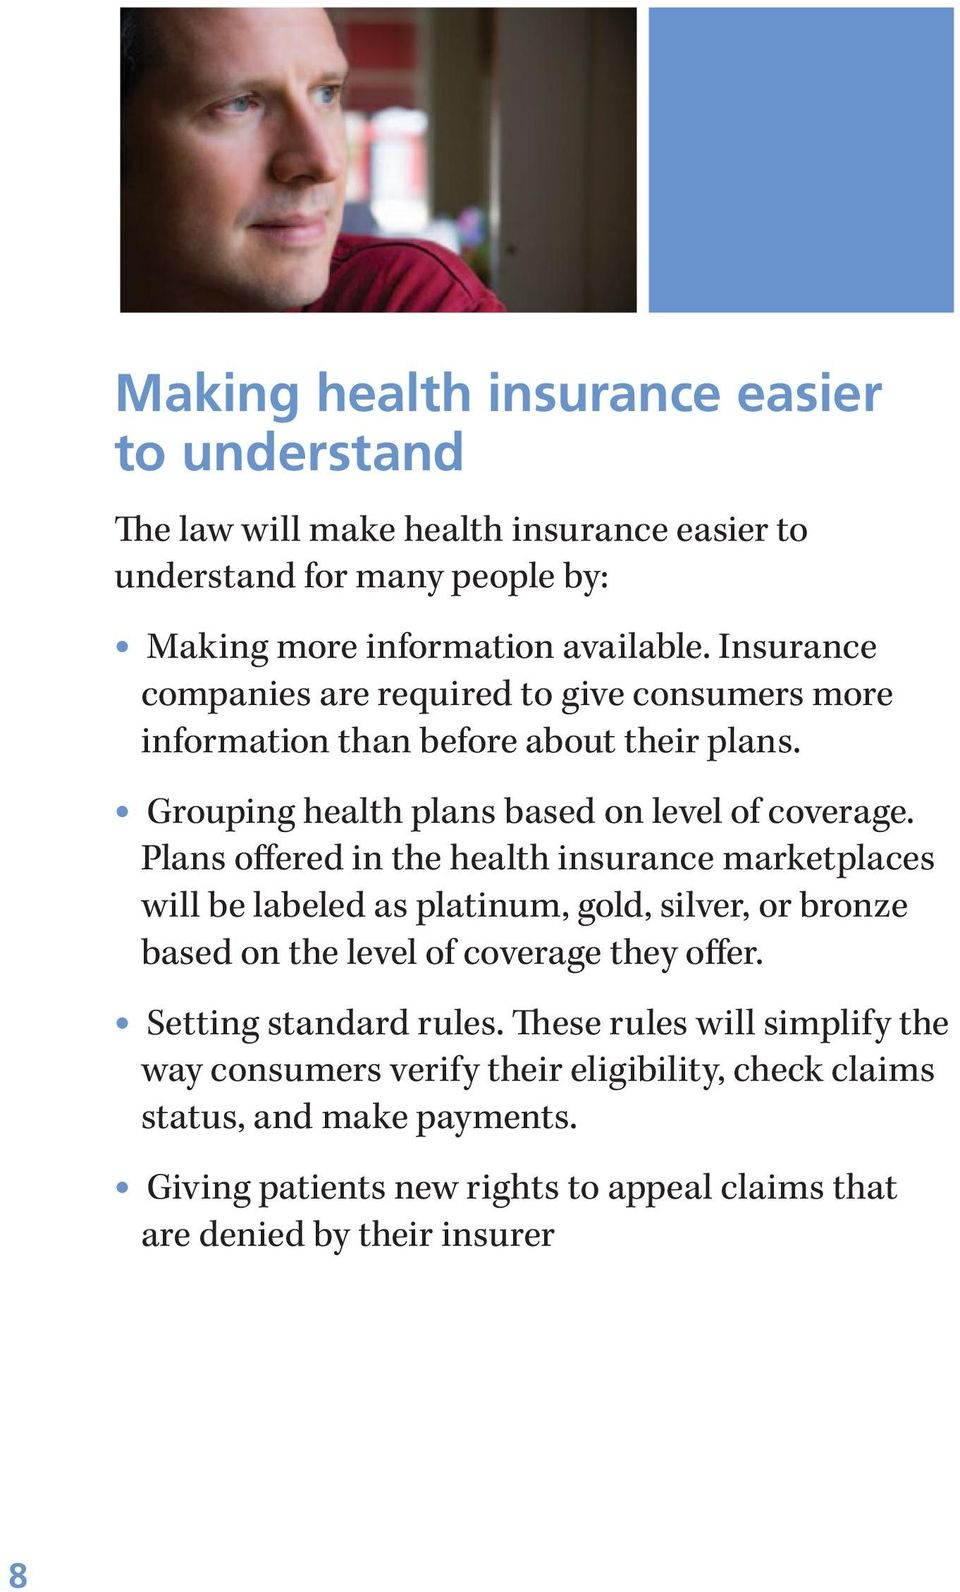 Plans offered in the health insurance marketplaces will be labeled as platinum, gold, silver, or bronze based on the level of coverage they offer.